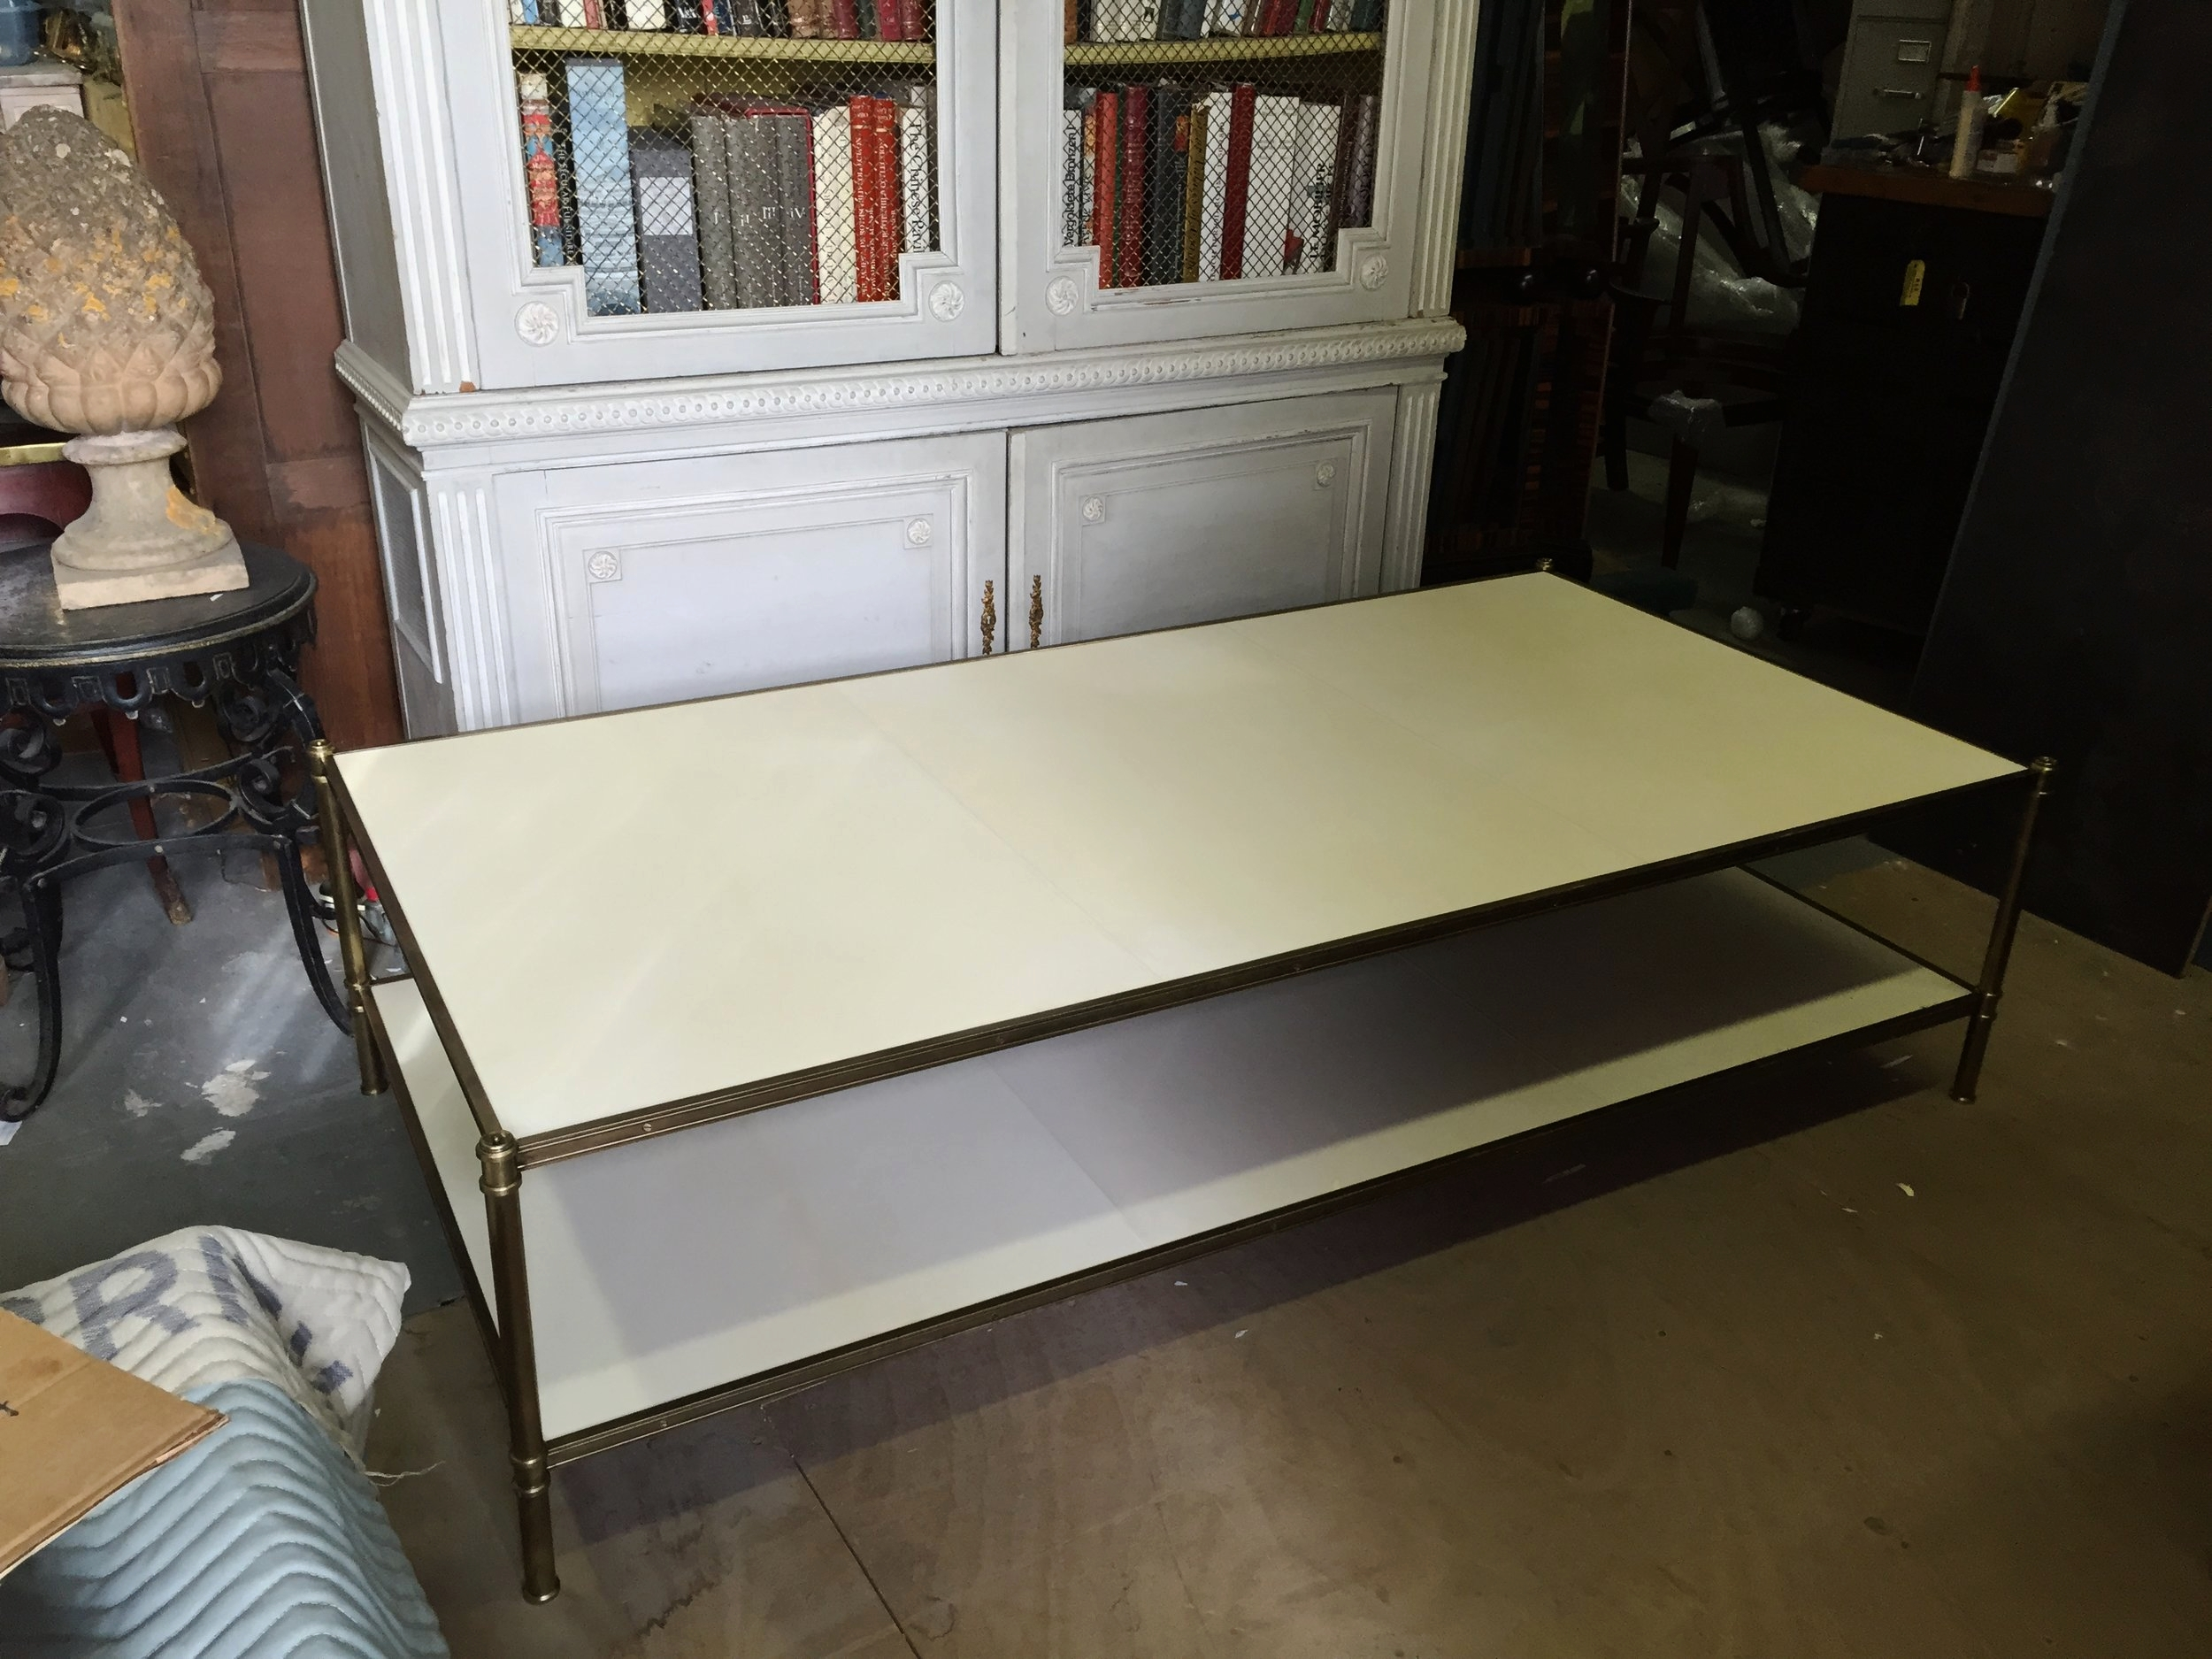 A large Cole Porter Coffee Table by Victoria & Son in parchment